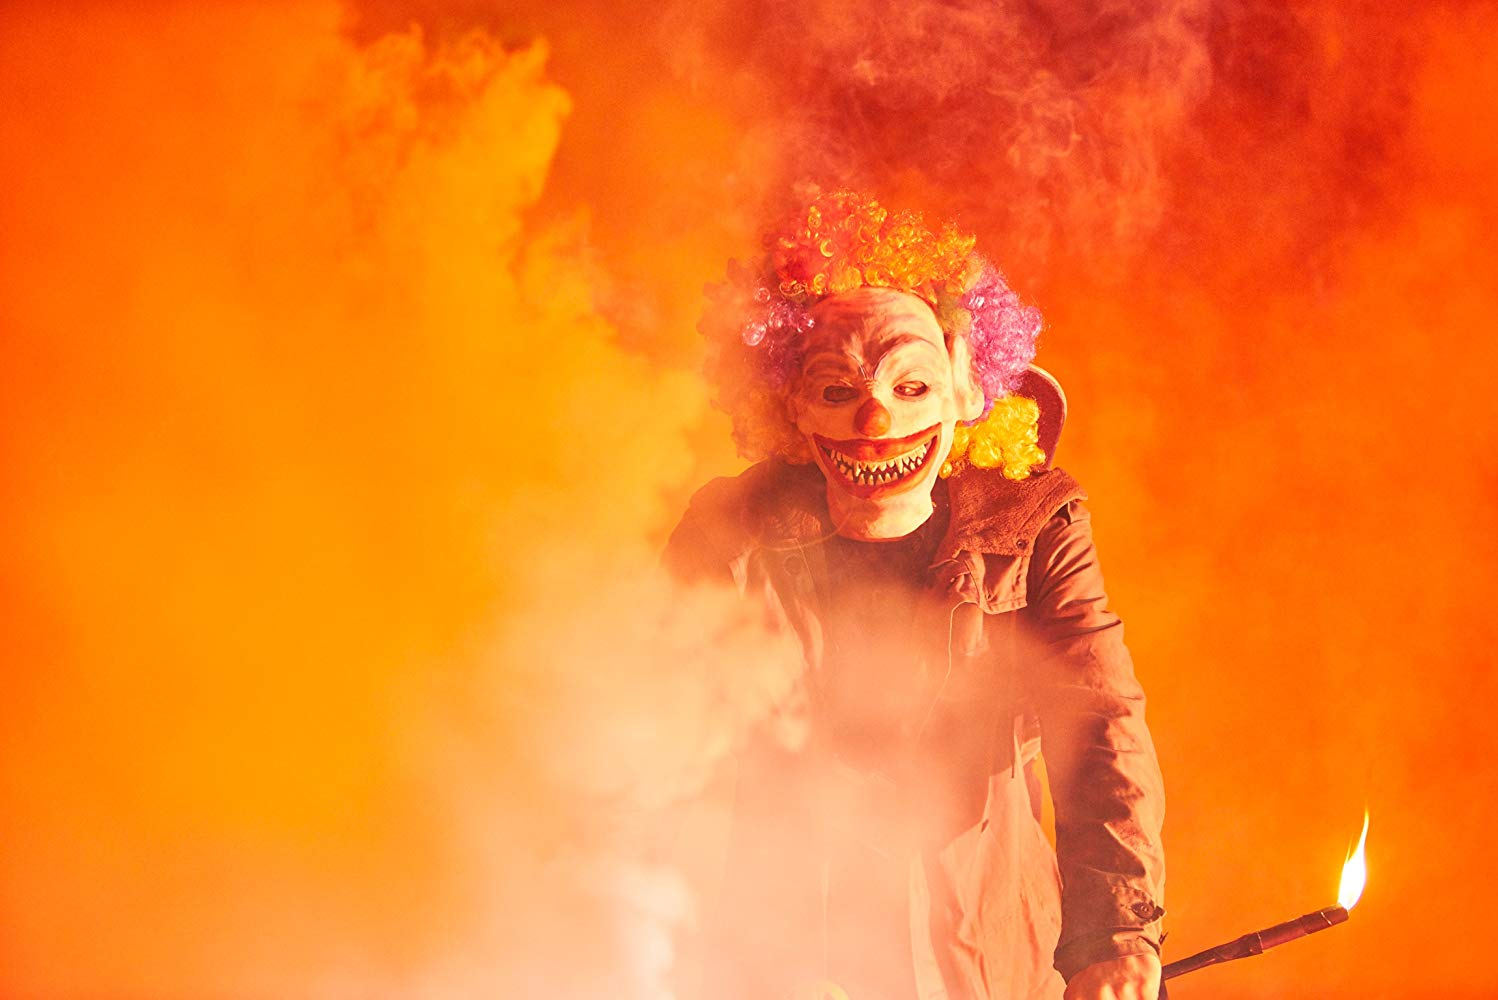 One of the bullies in the film wears a clown mask and wields a flare, giving off a bright orange light